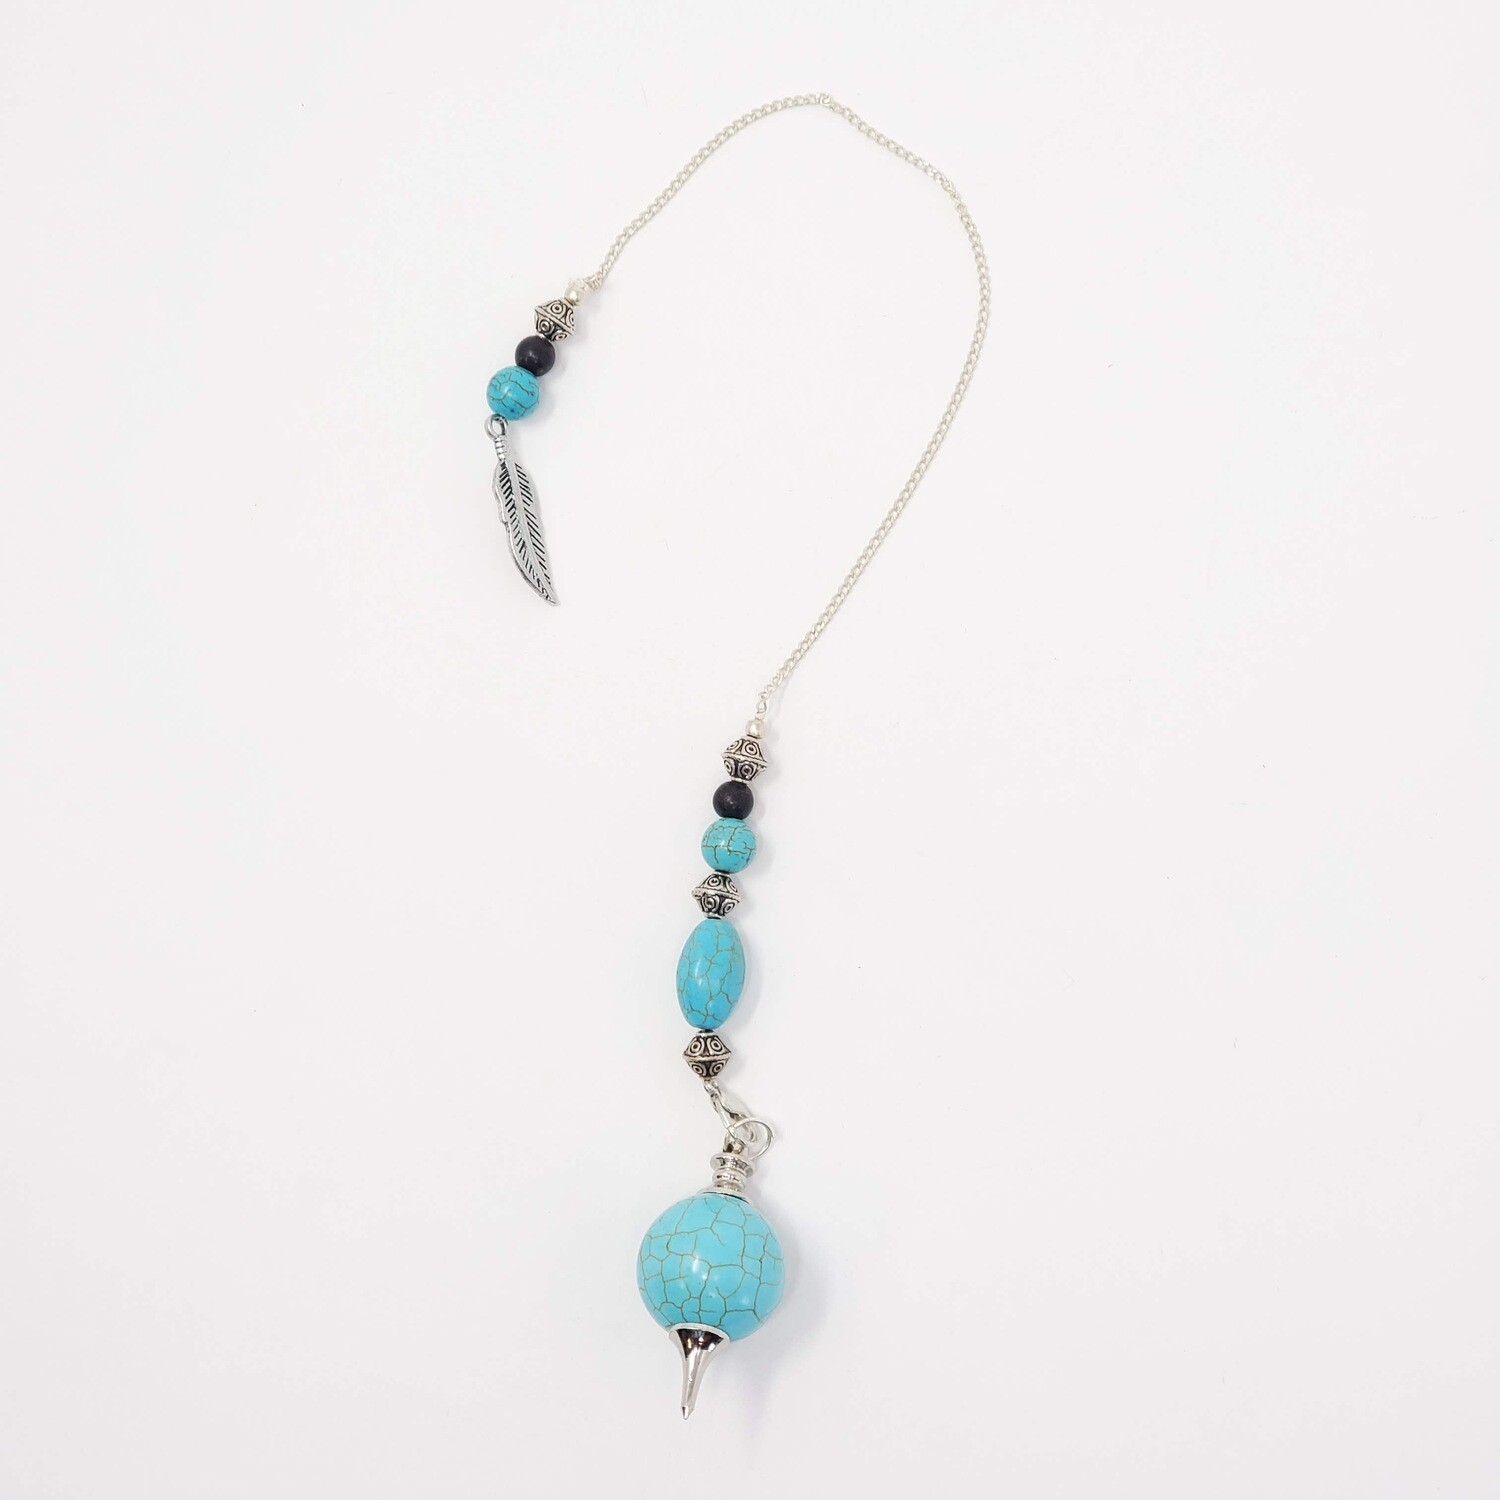 TURQUOISE FEATHER PENDULUM